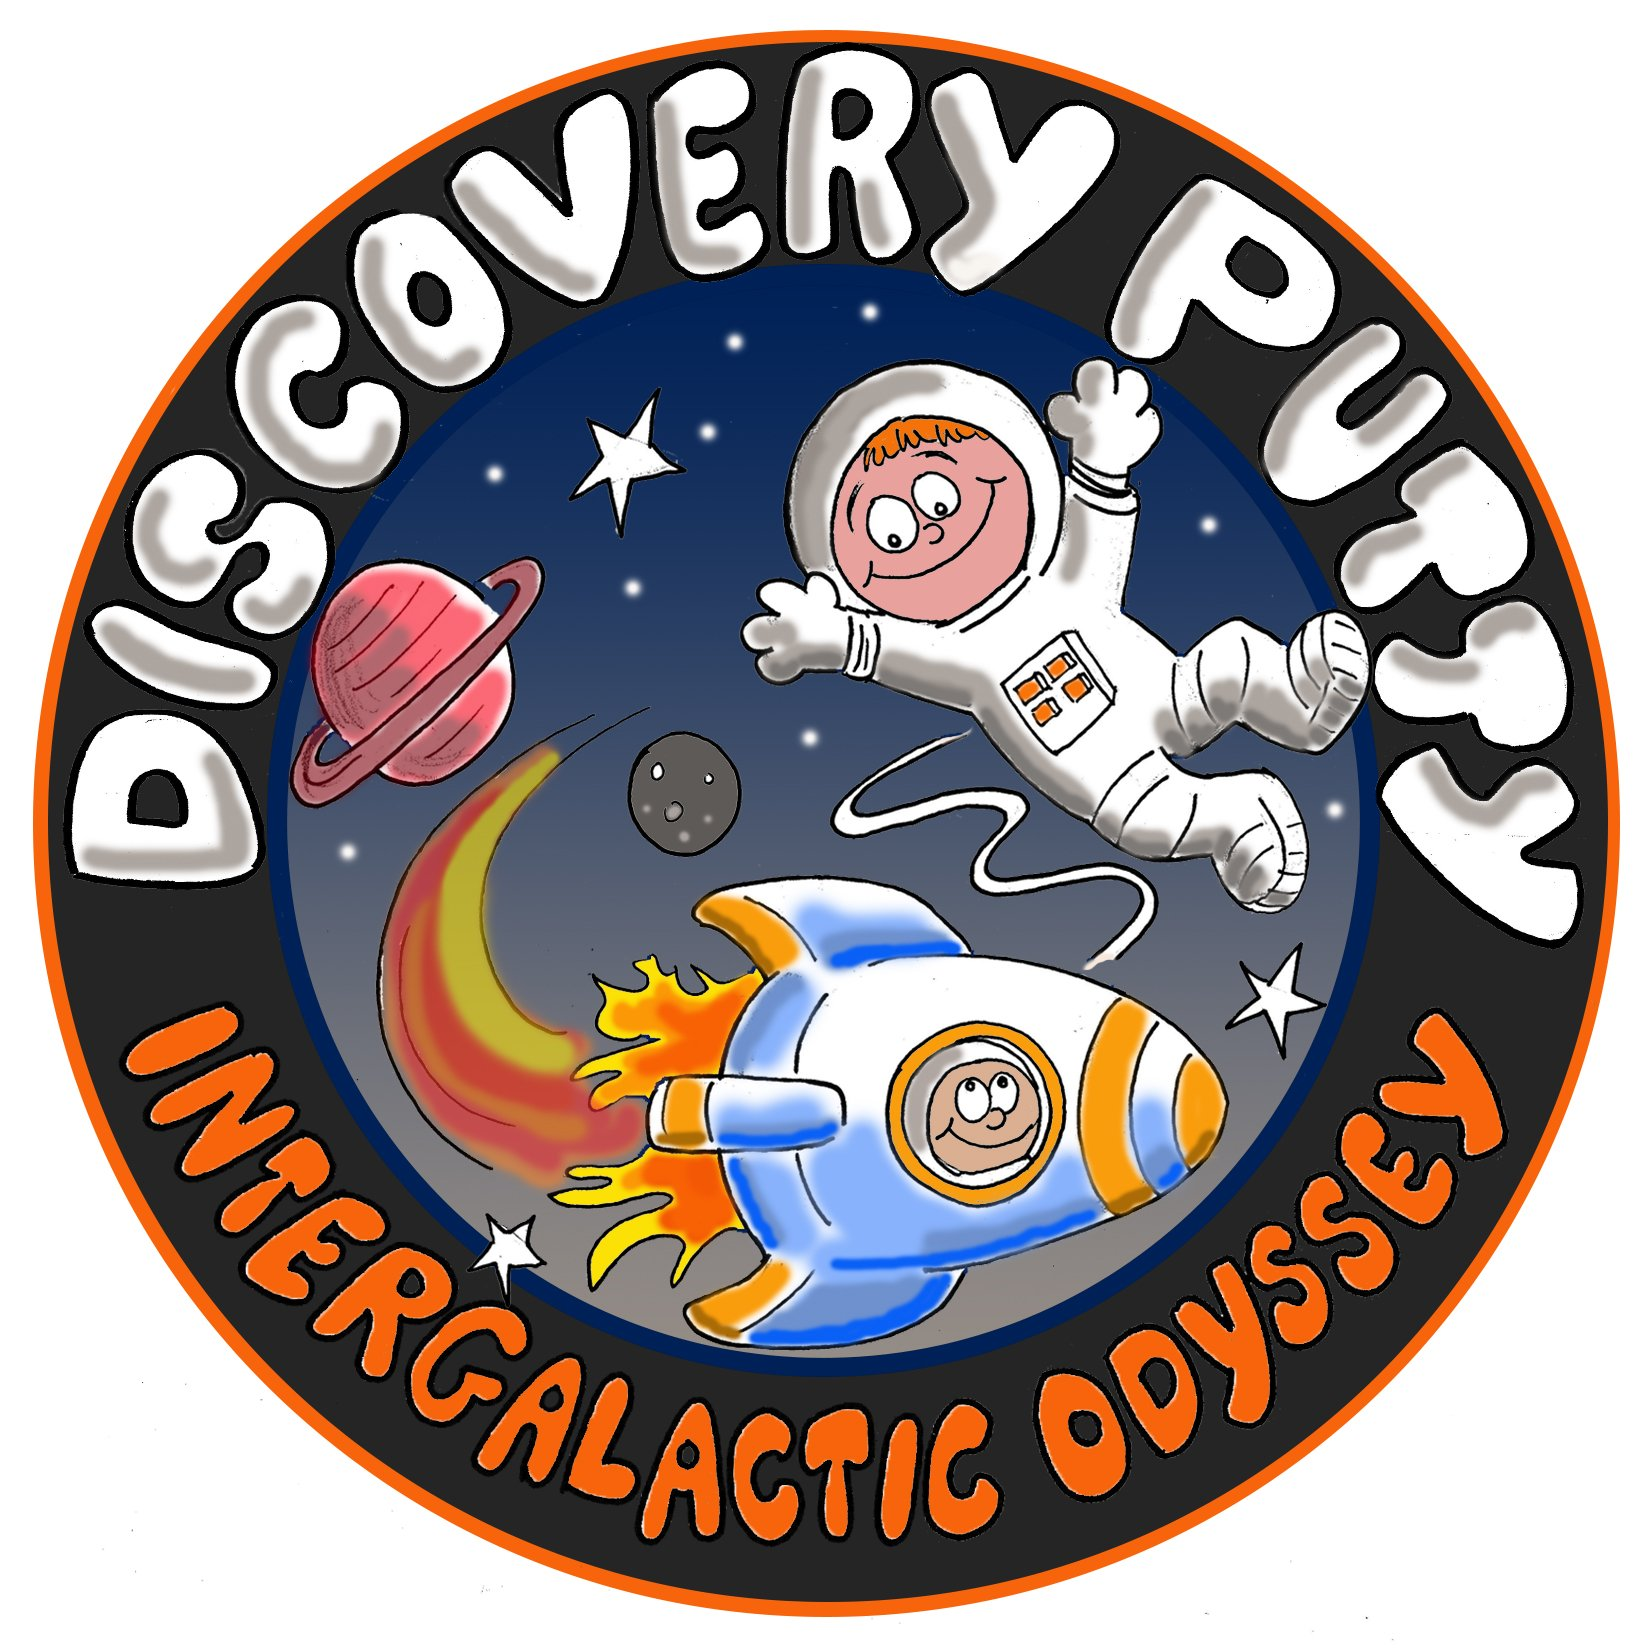 Discovery Putty Intergalactic Odyssey